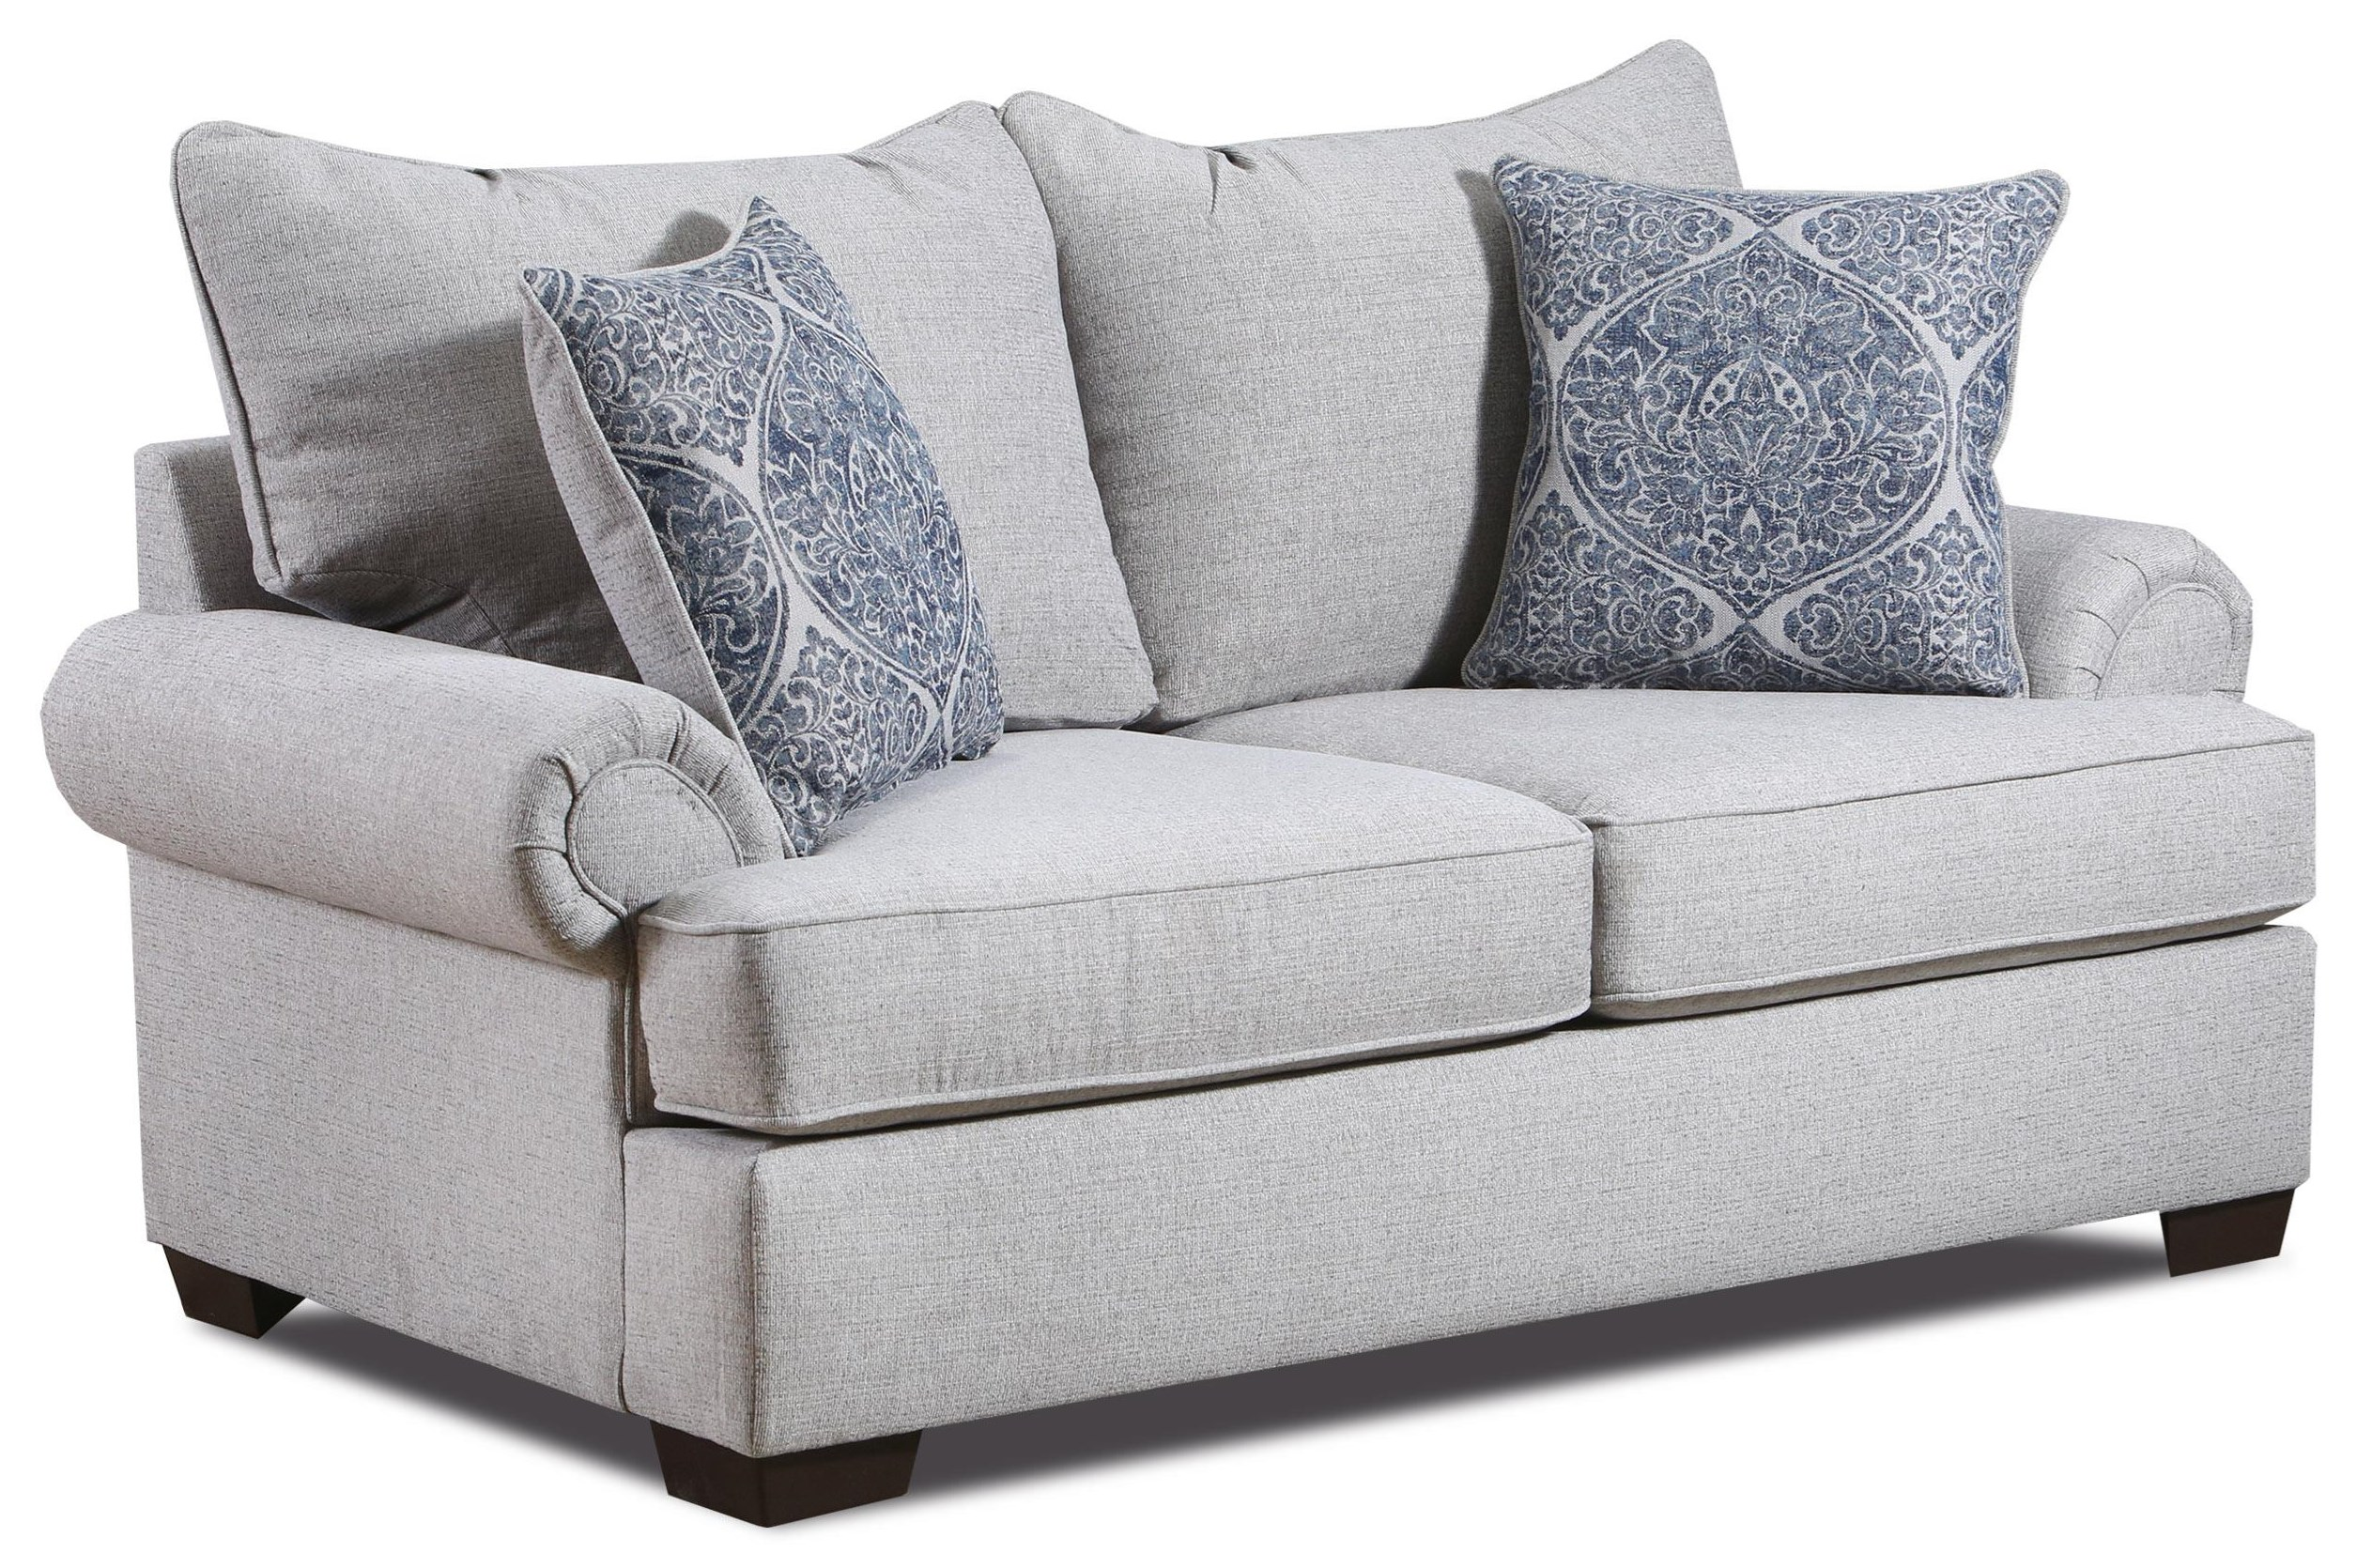 Azure Loveseat by Behold Home at Darvin Furniture